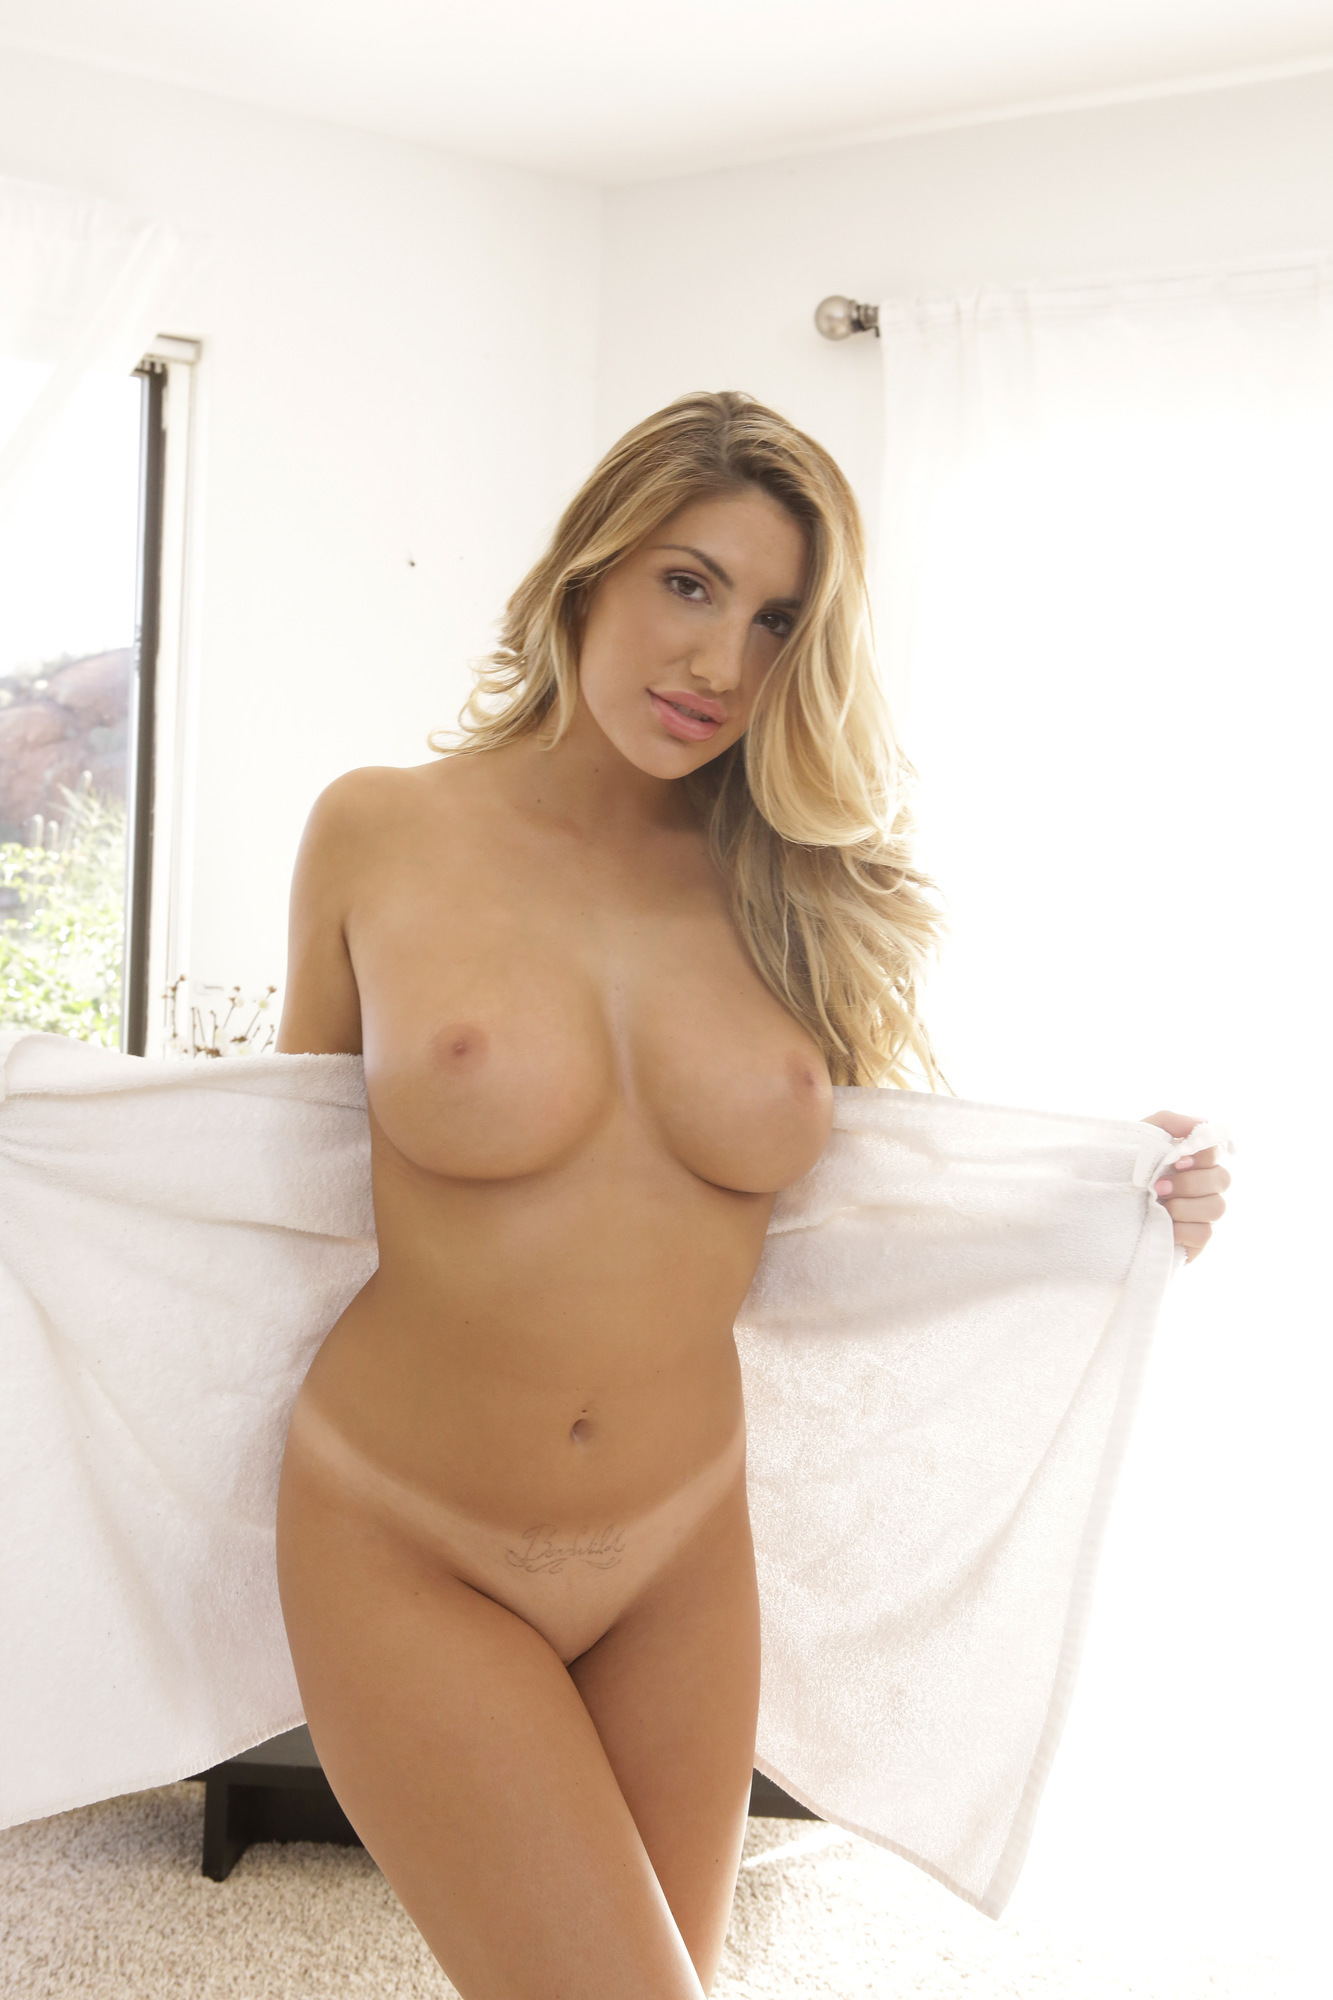 August ames - between the breasts